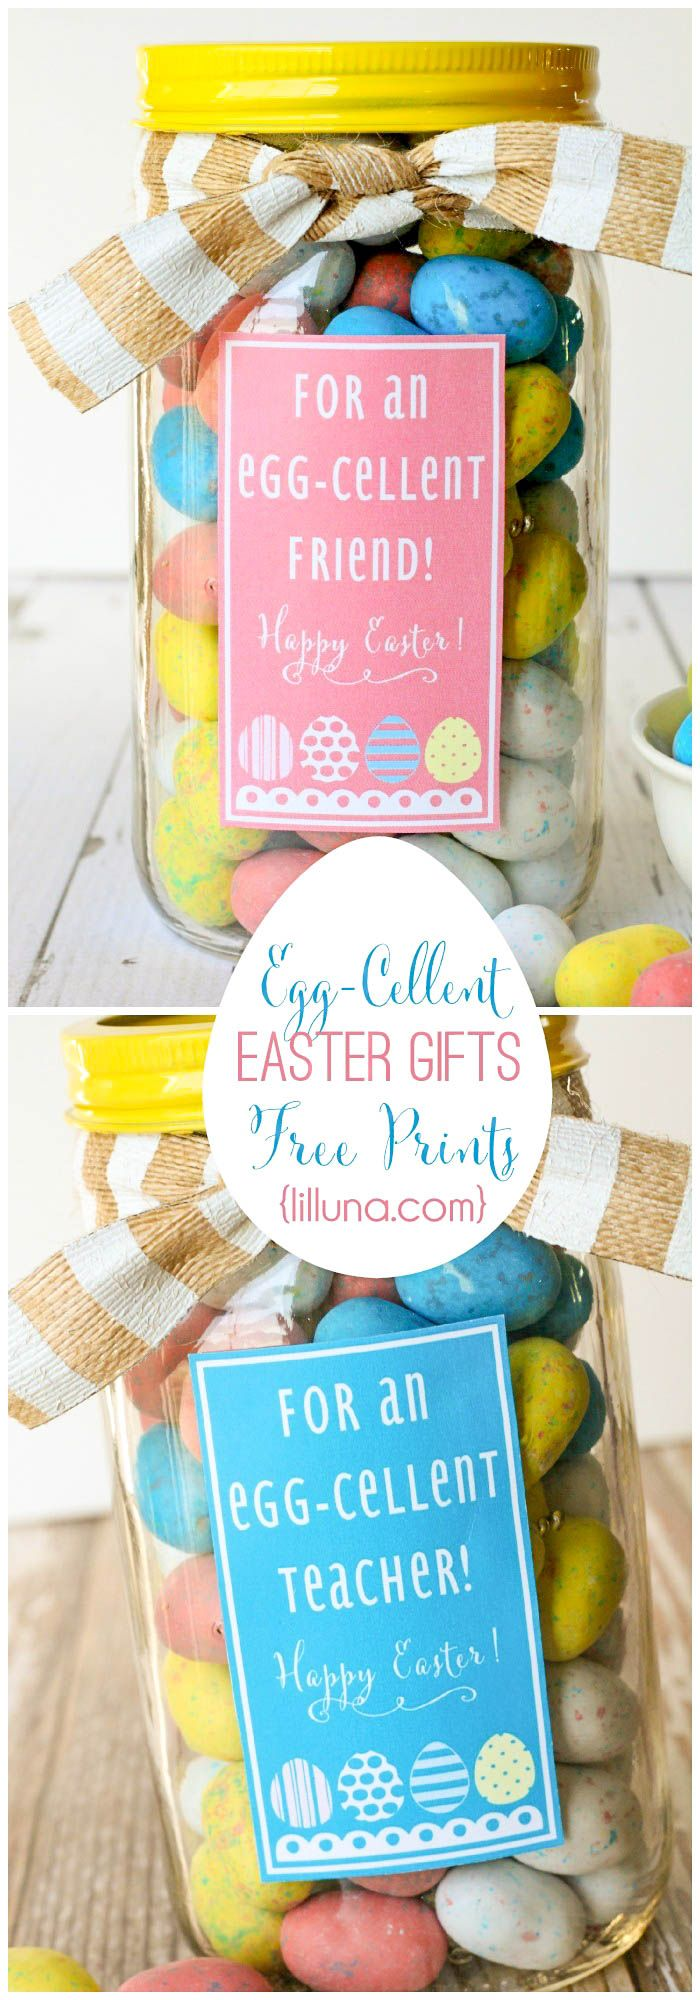 Egg-Cellent Easter Gift Ideas - cute and inexpensive! { lilluna.com } Few supplies needed to make this fun Easter gift.